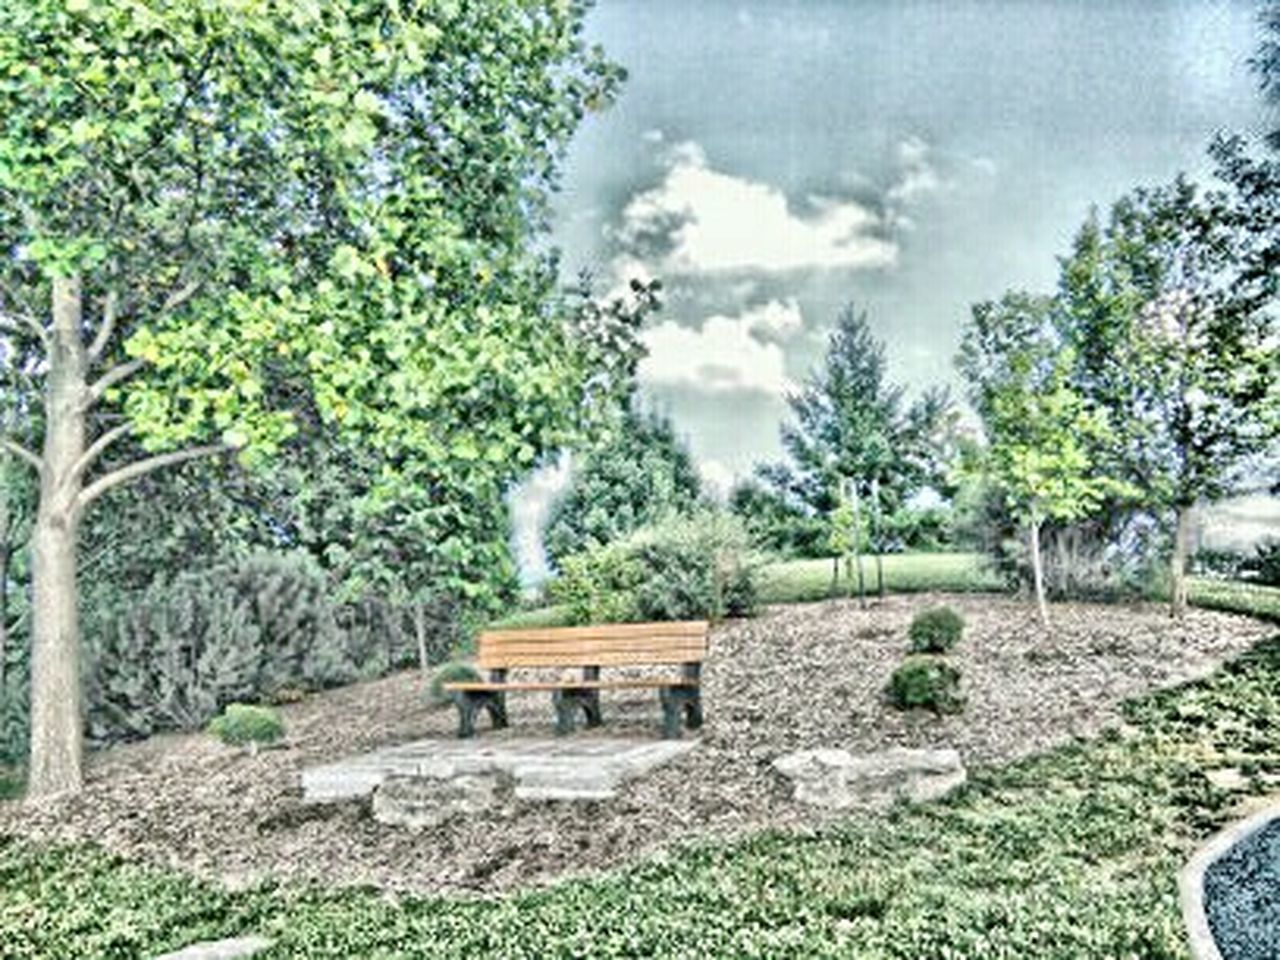 Lonely little bench New On Market EyeEm Gallery Still Life Popular TRENDING  Film EyeEm Week Eyeem Trending My Point Of View Park Bench Park Life Showcase June